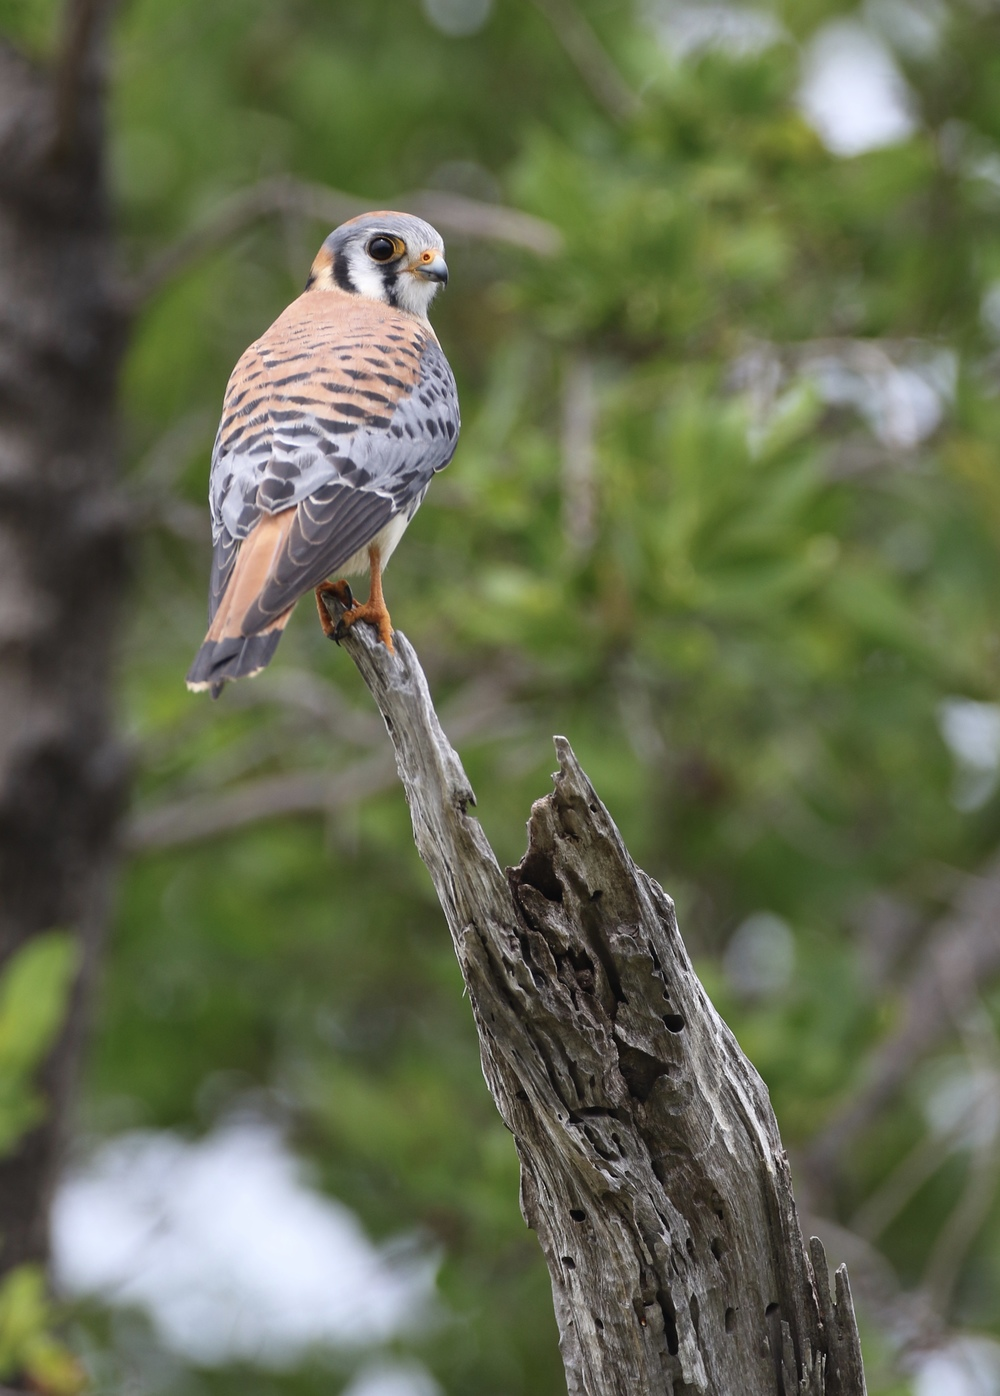 American Kestrel inside Fort Jefferson- one of 3 total over my stay